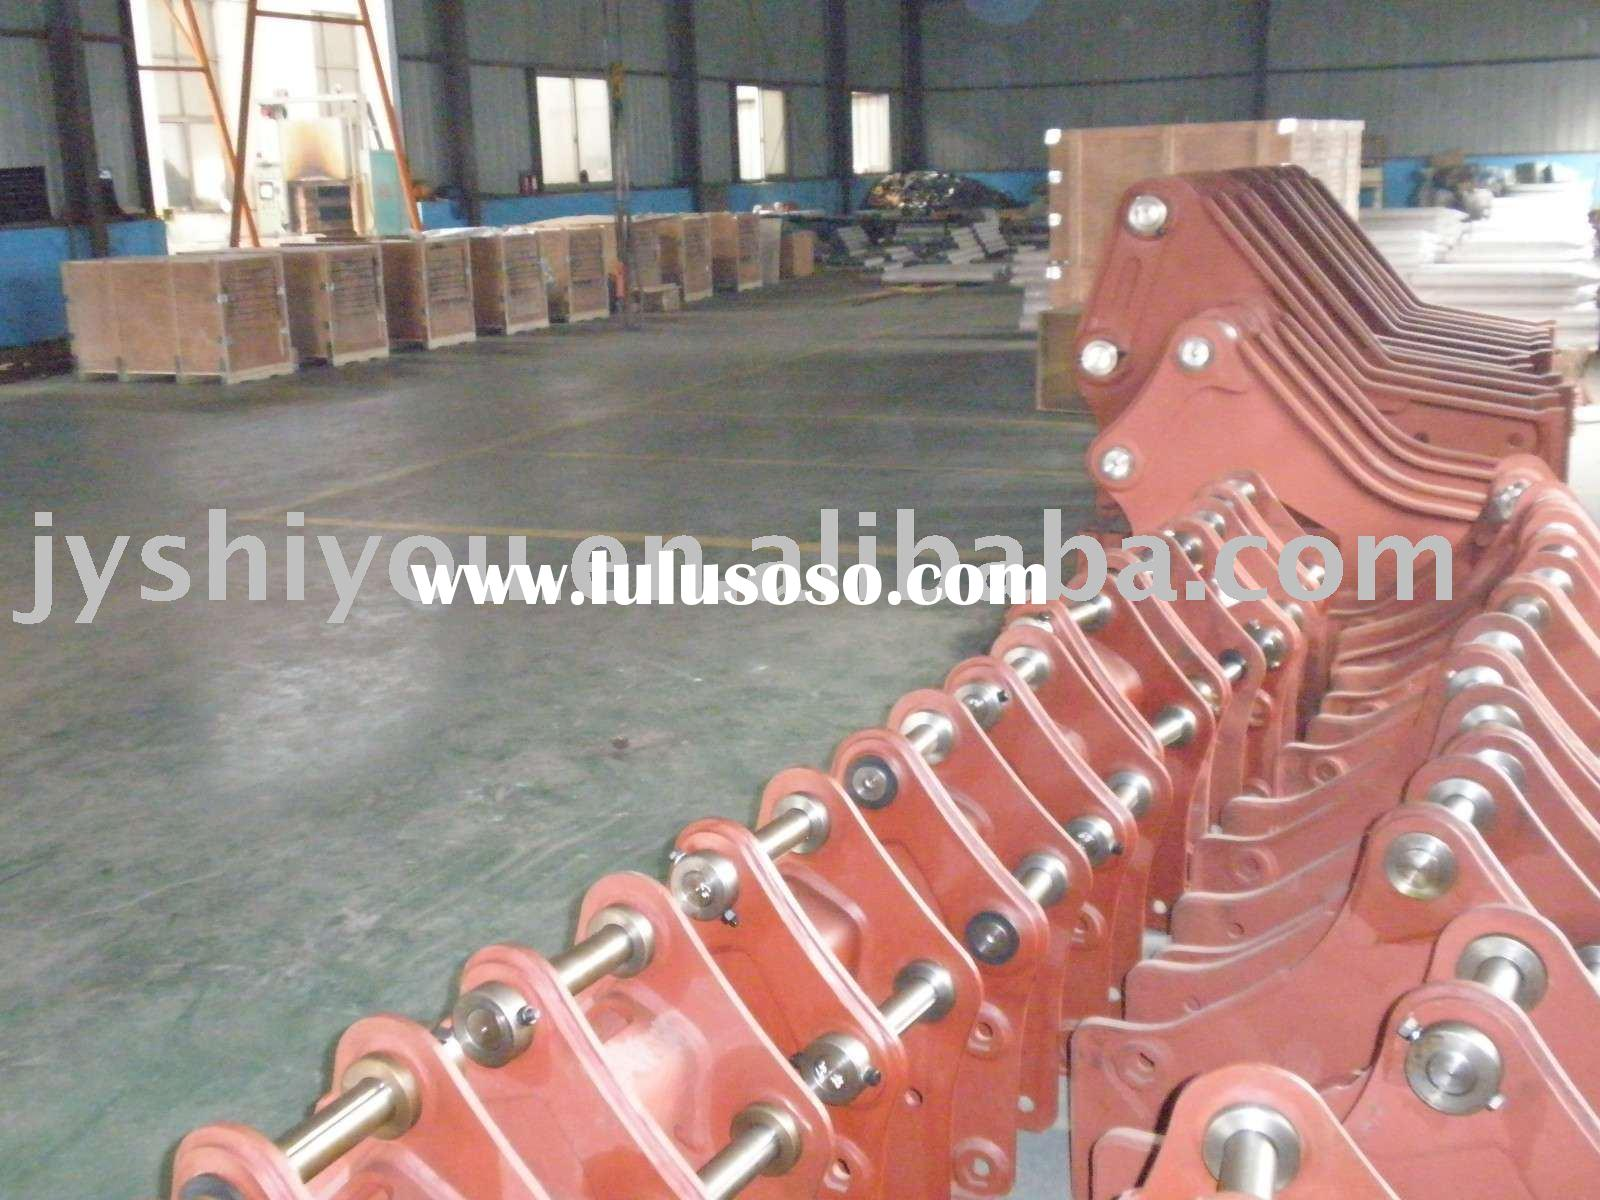 hydraulic breaker part